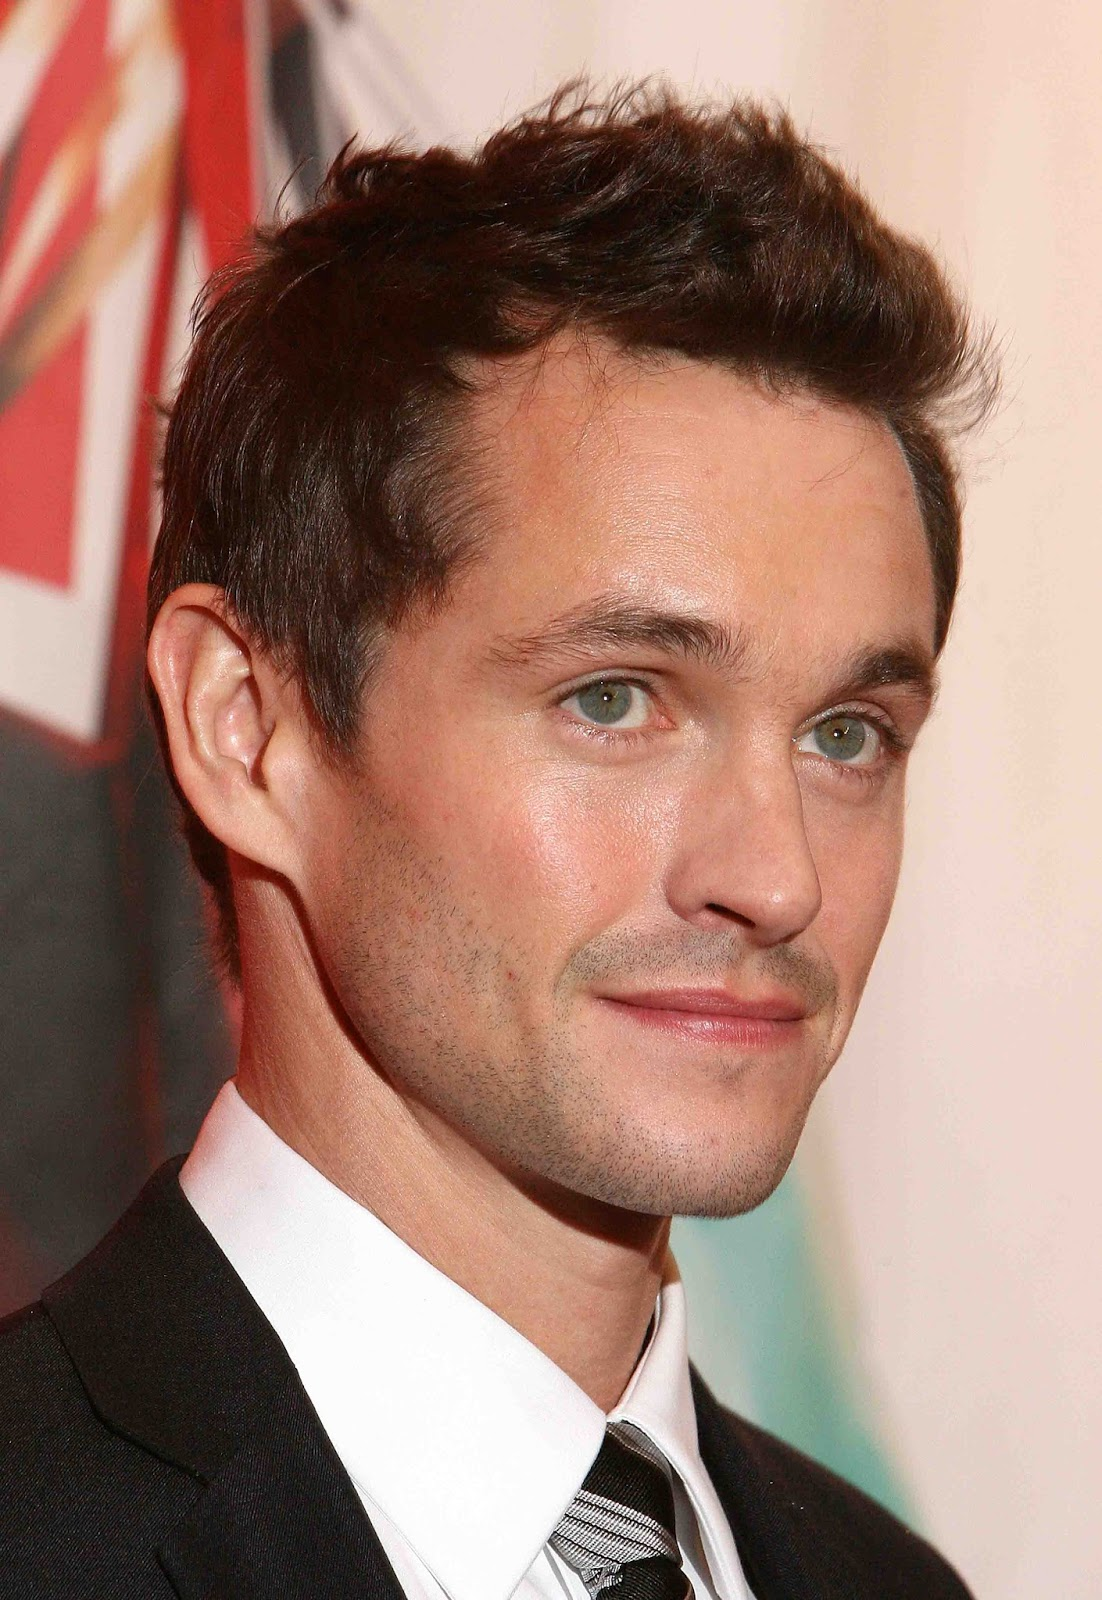 Hugh Dancy Eyes | xperehod.com